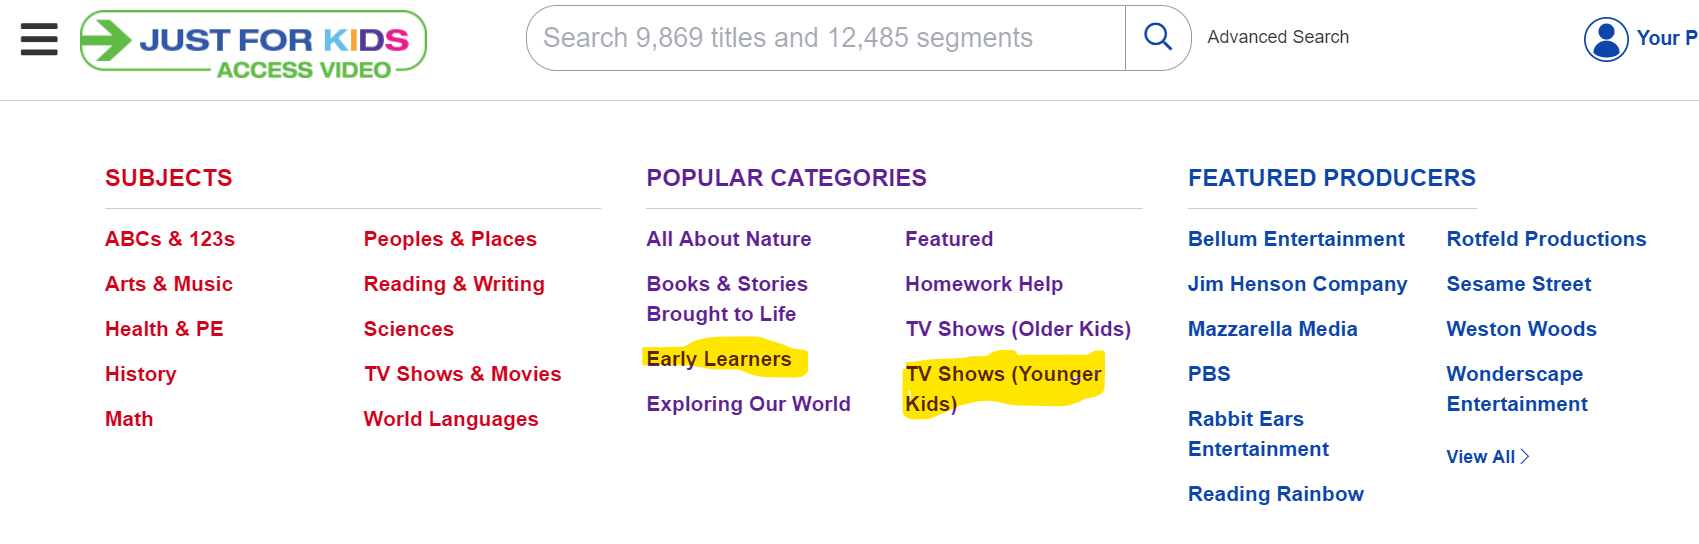 Use the Categories section to get tv shows for young viewers.